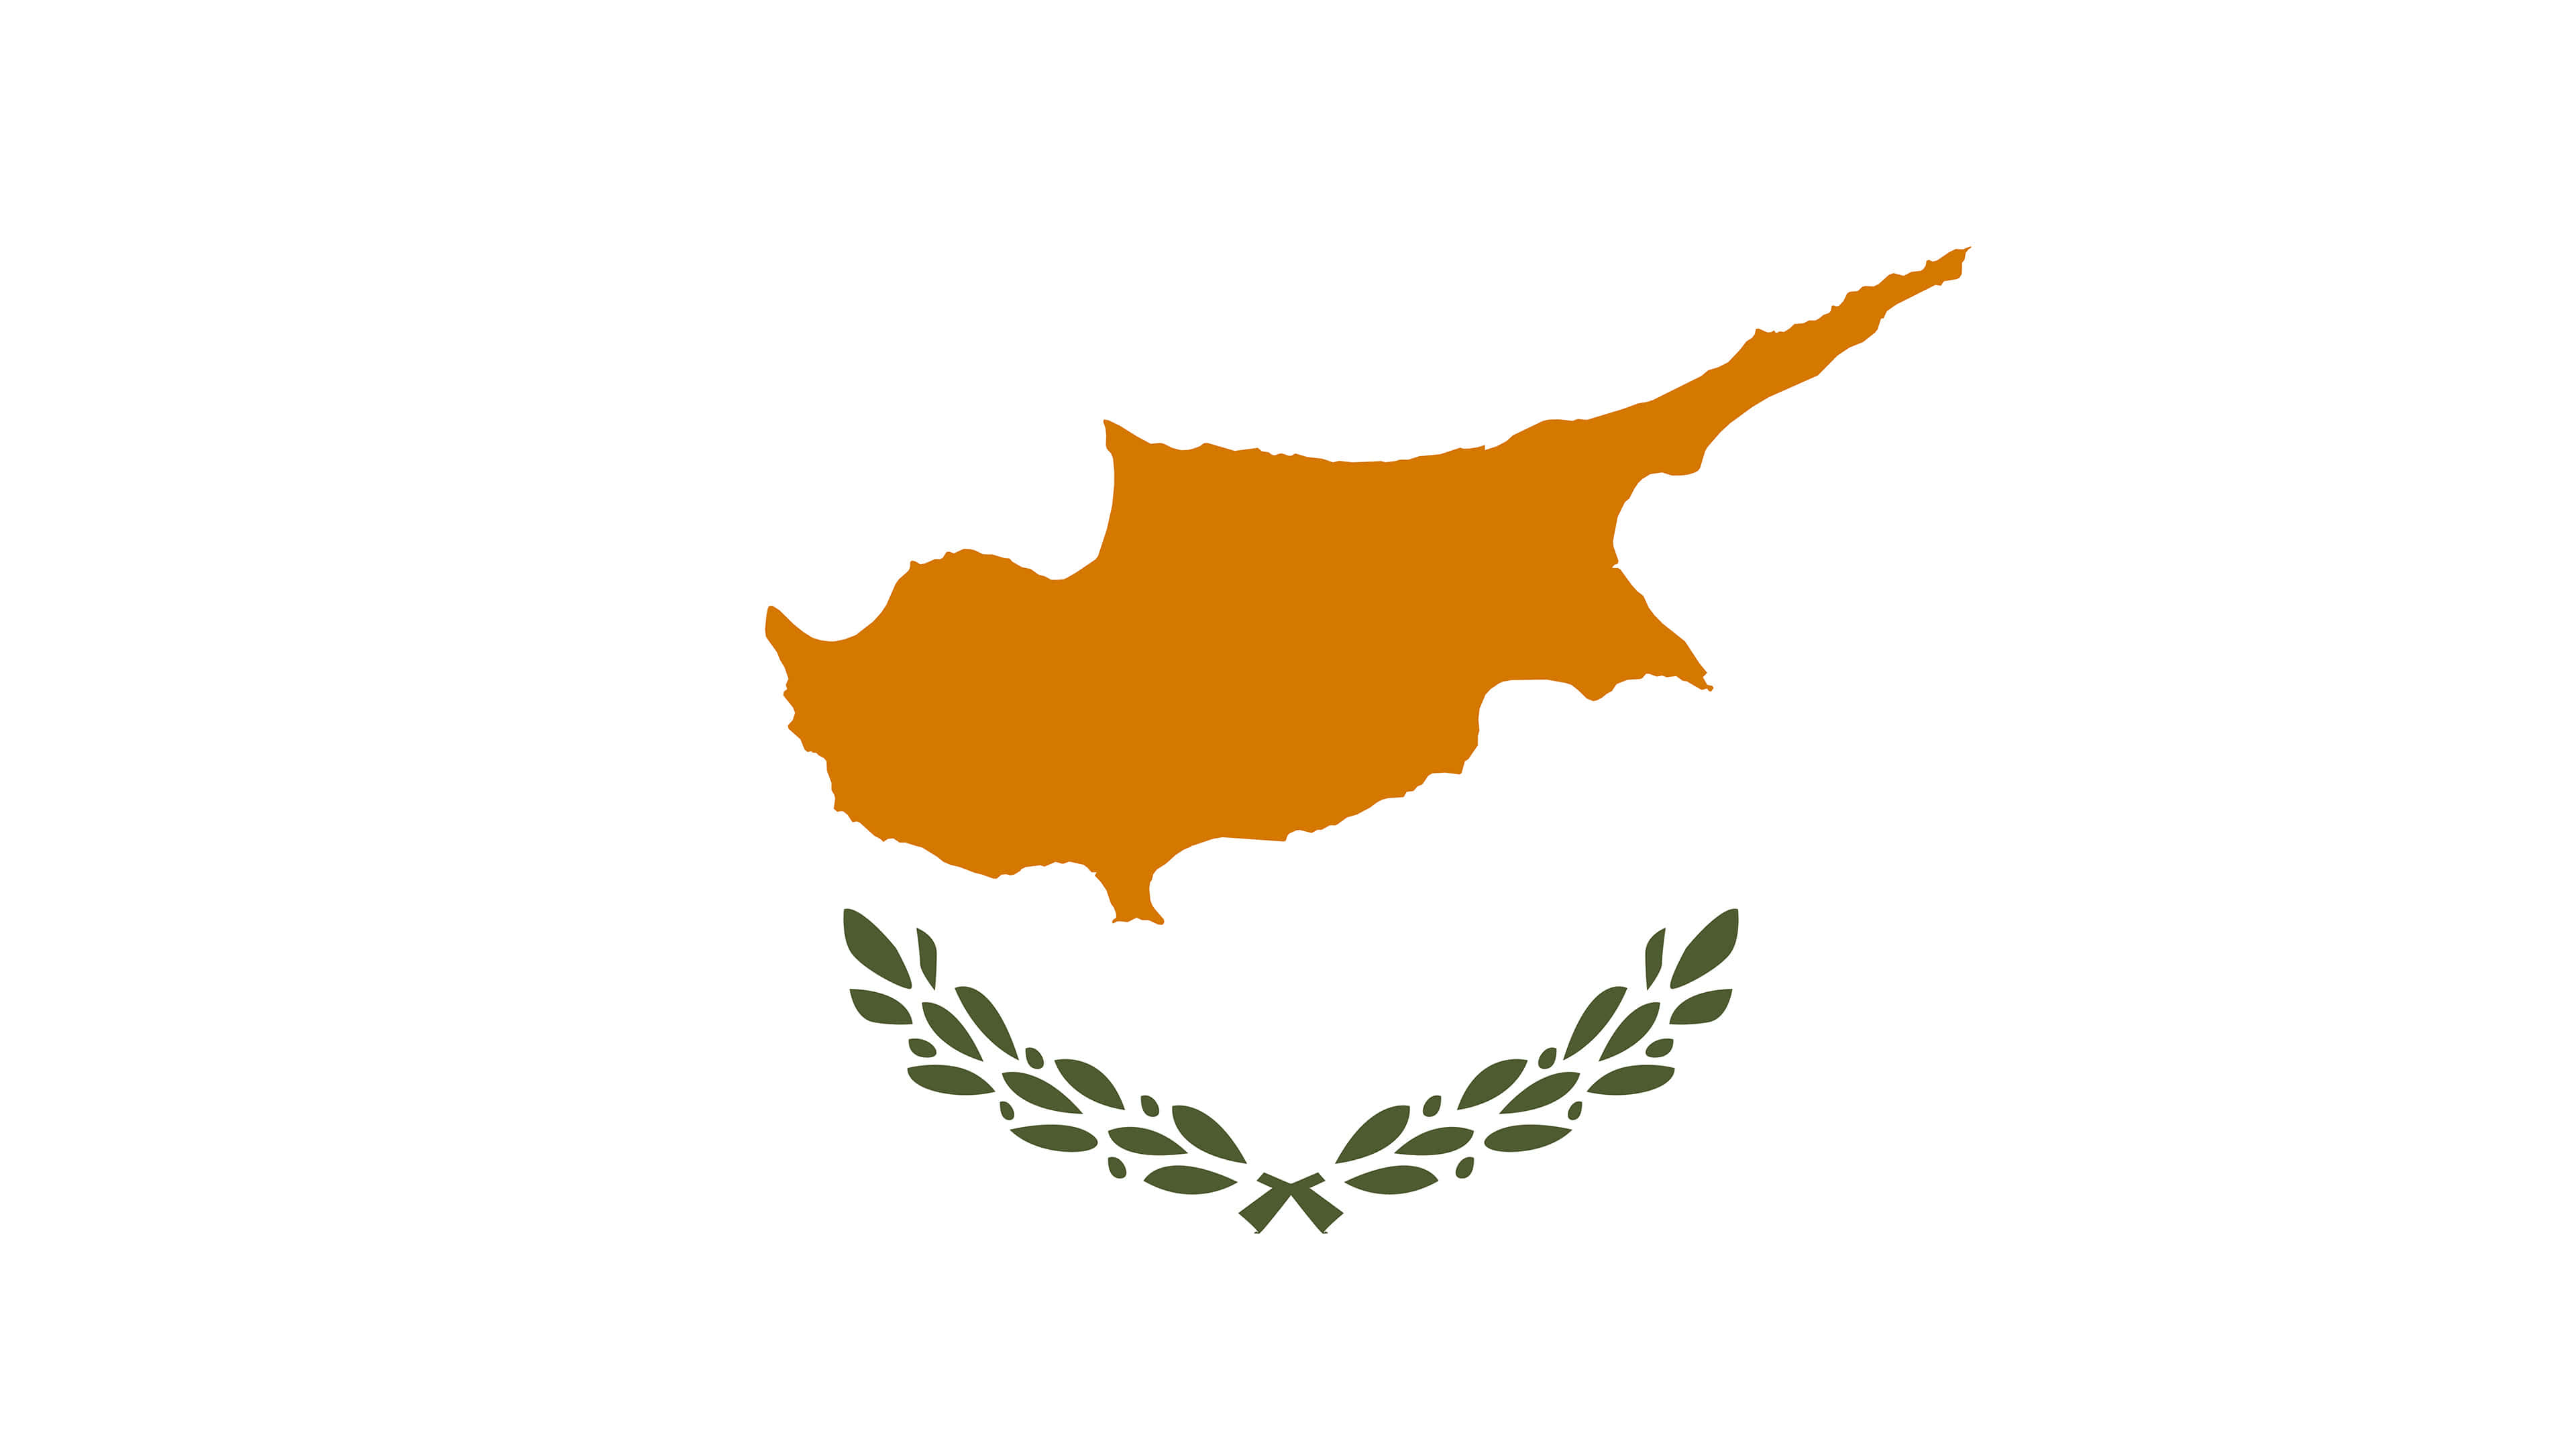 cyprus flag uhd 4k wallpaper